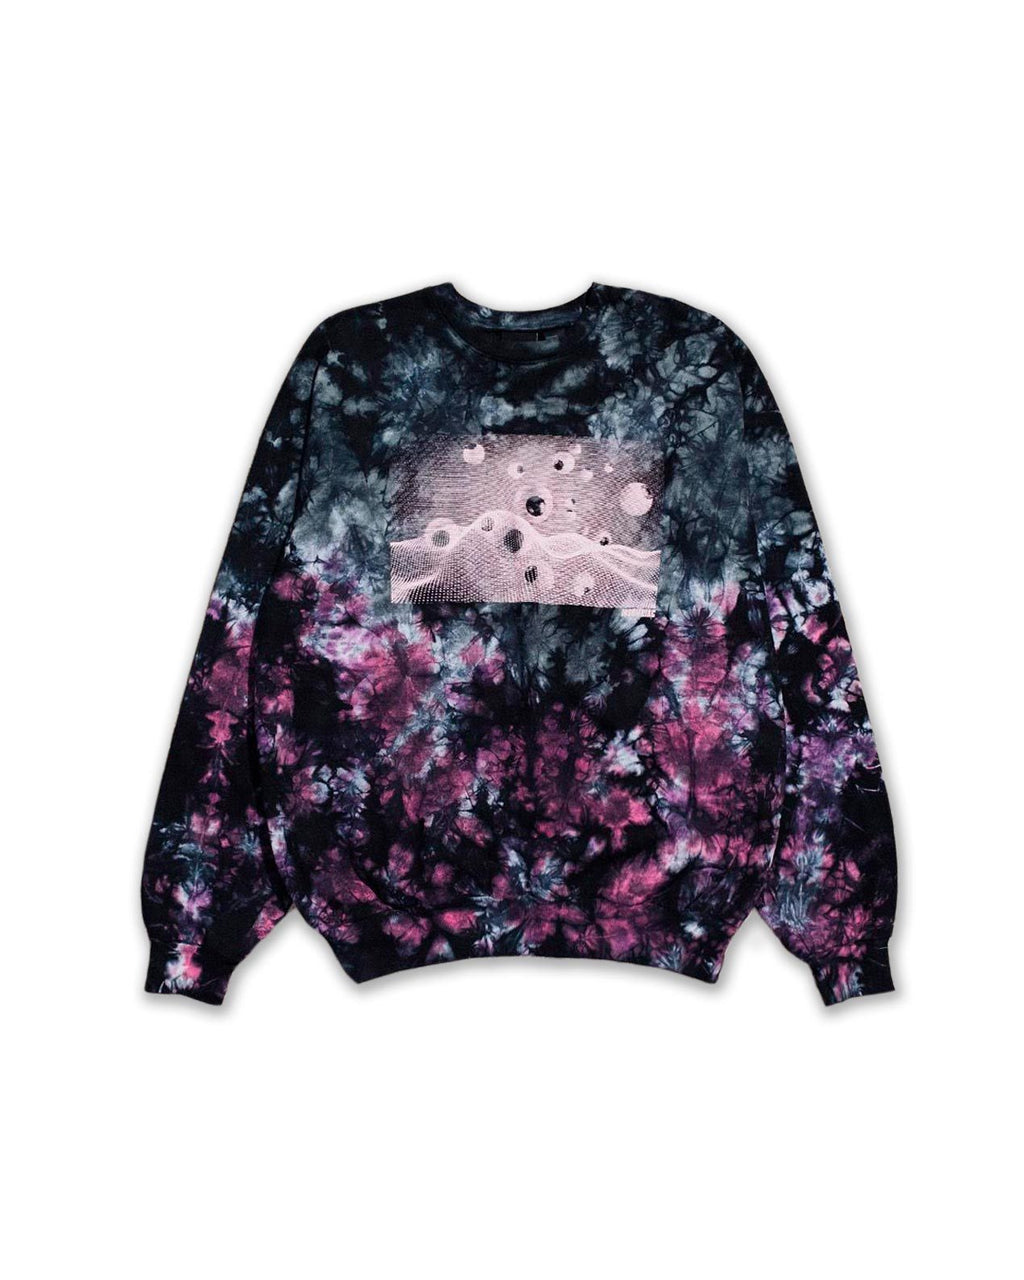 WAKE IN SPACE CREWNECK